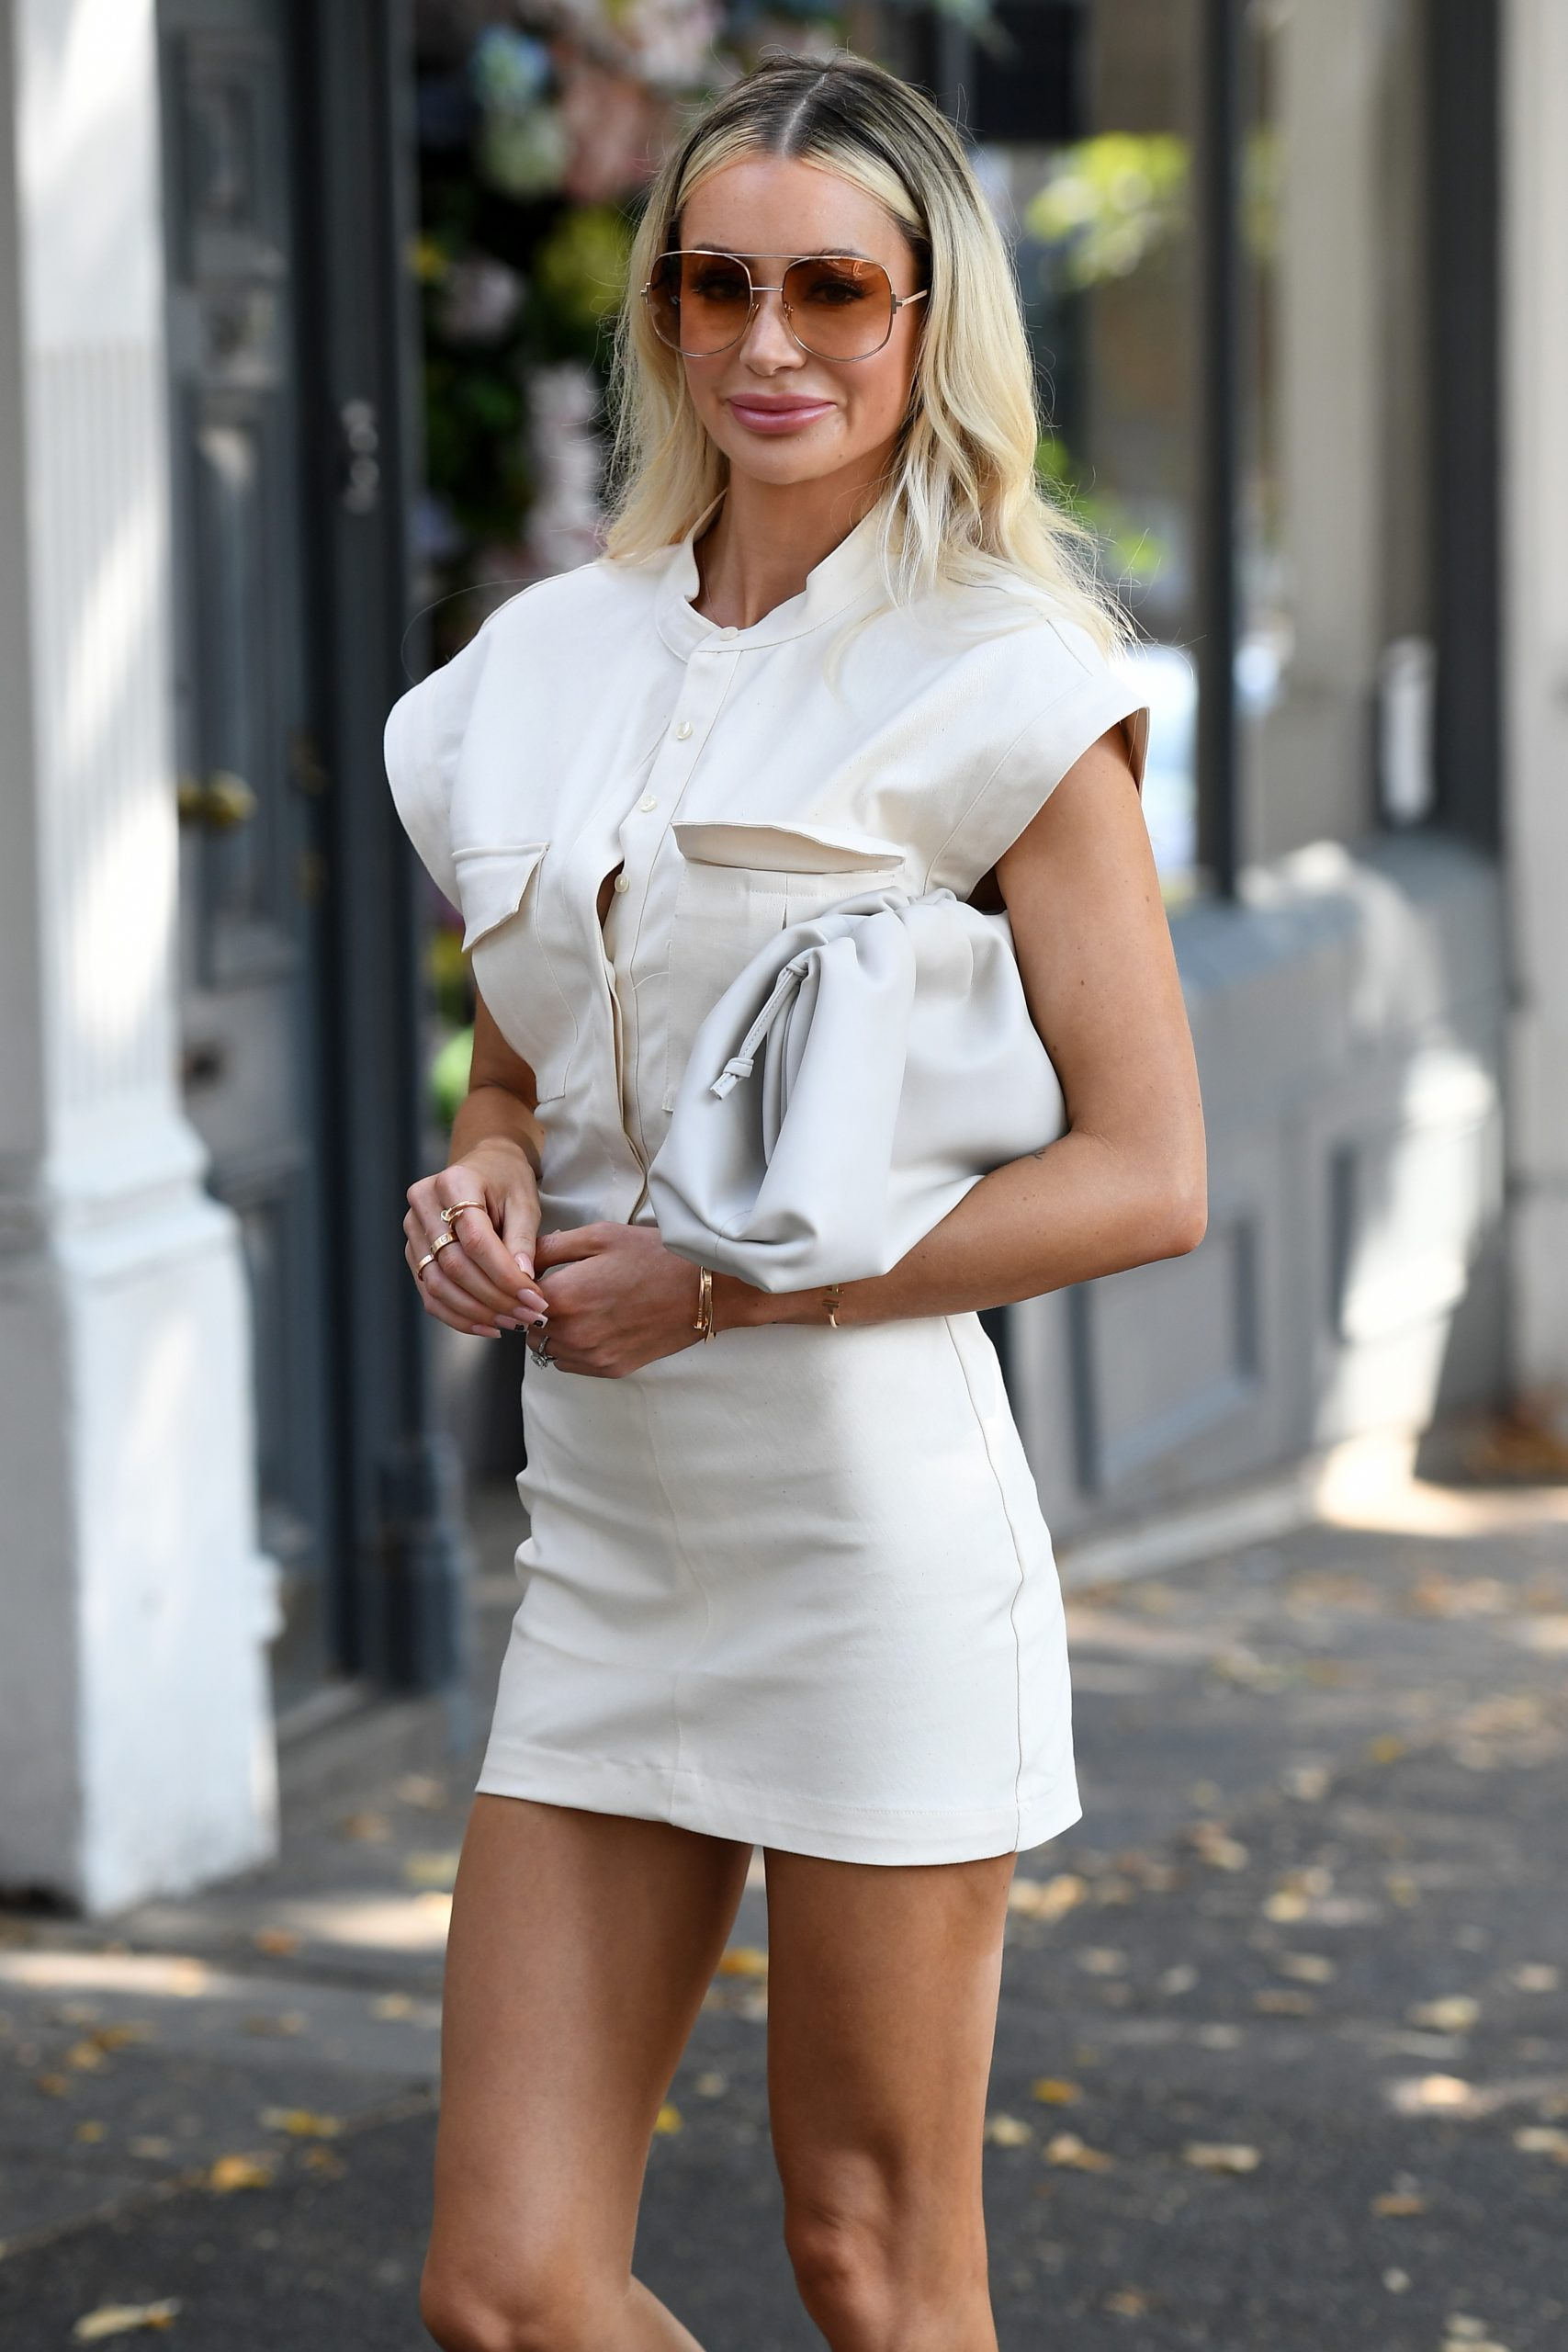 Olivia Attwood 2020 : Olivia Attwood – Leggy in white dress while out in London-15